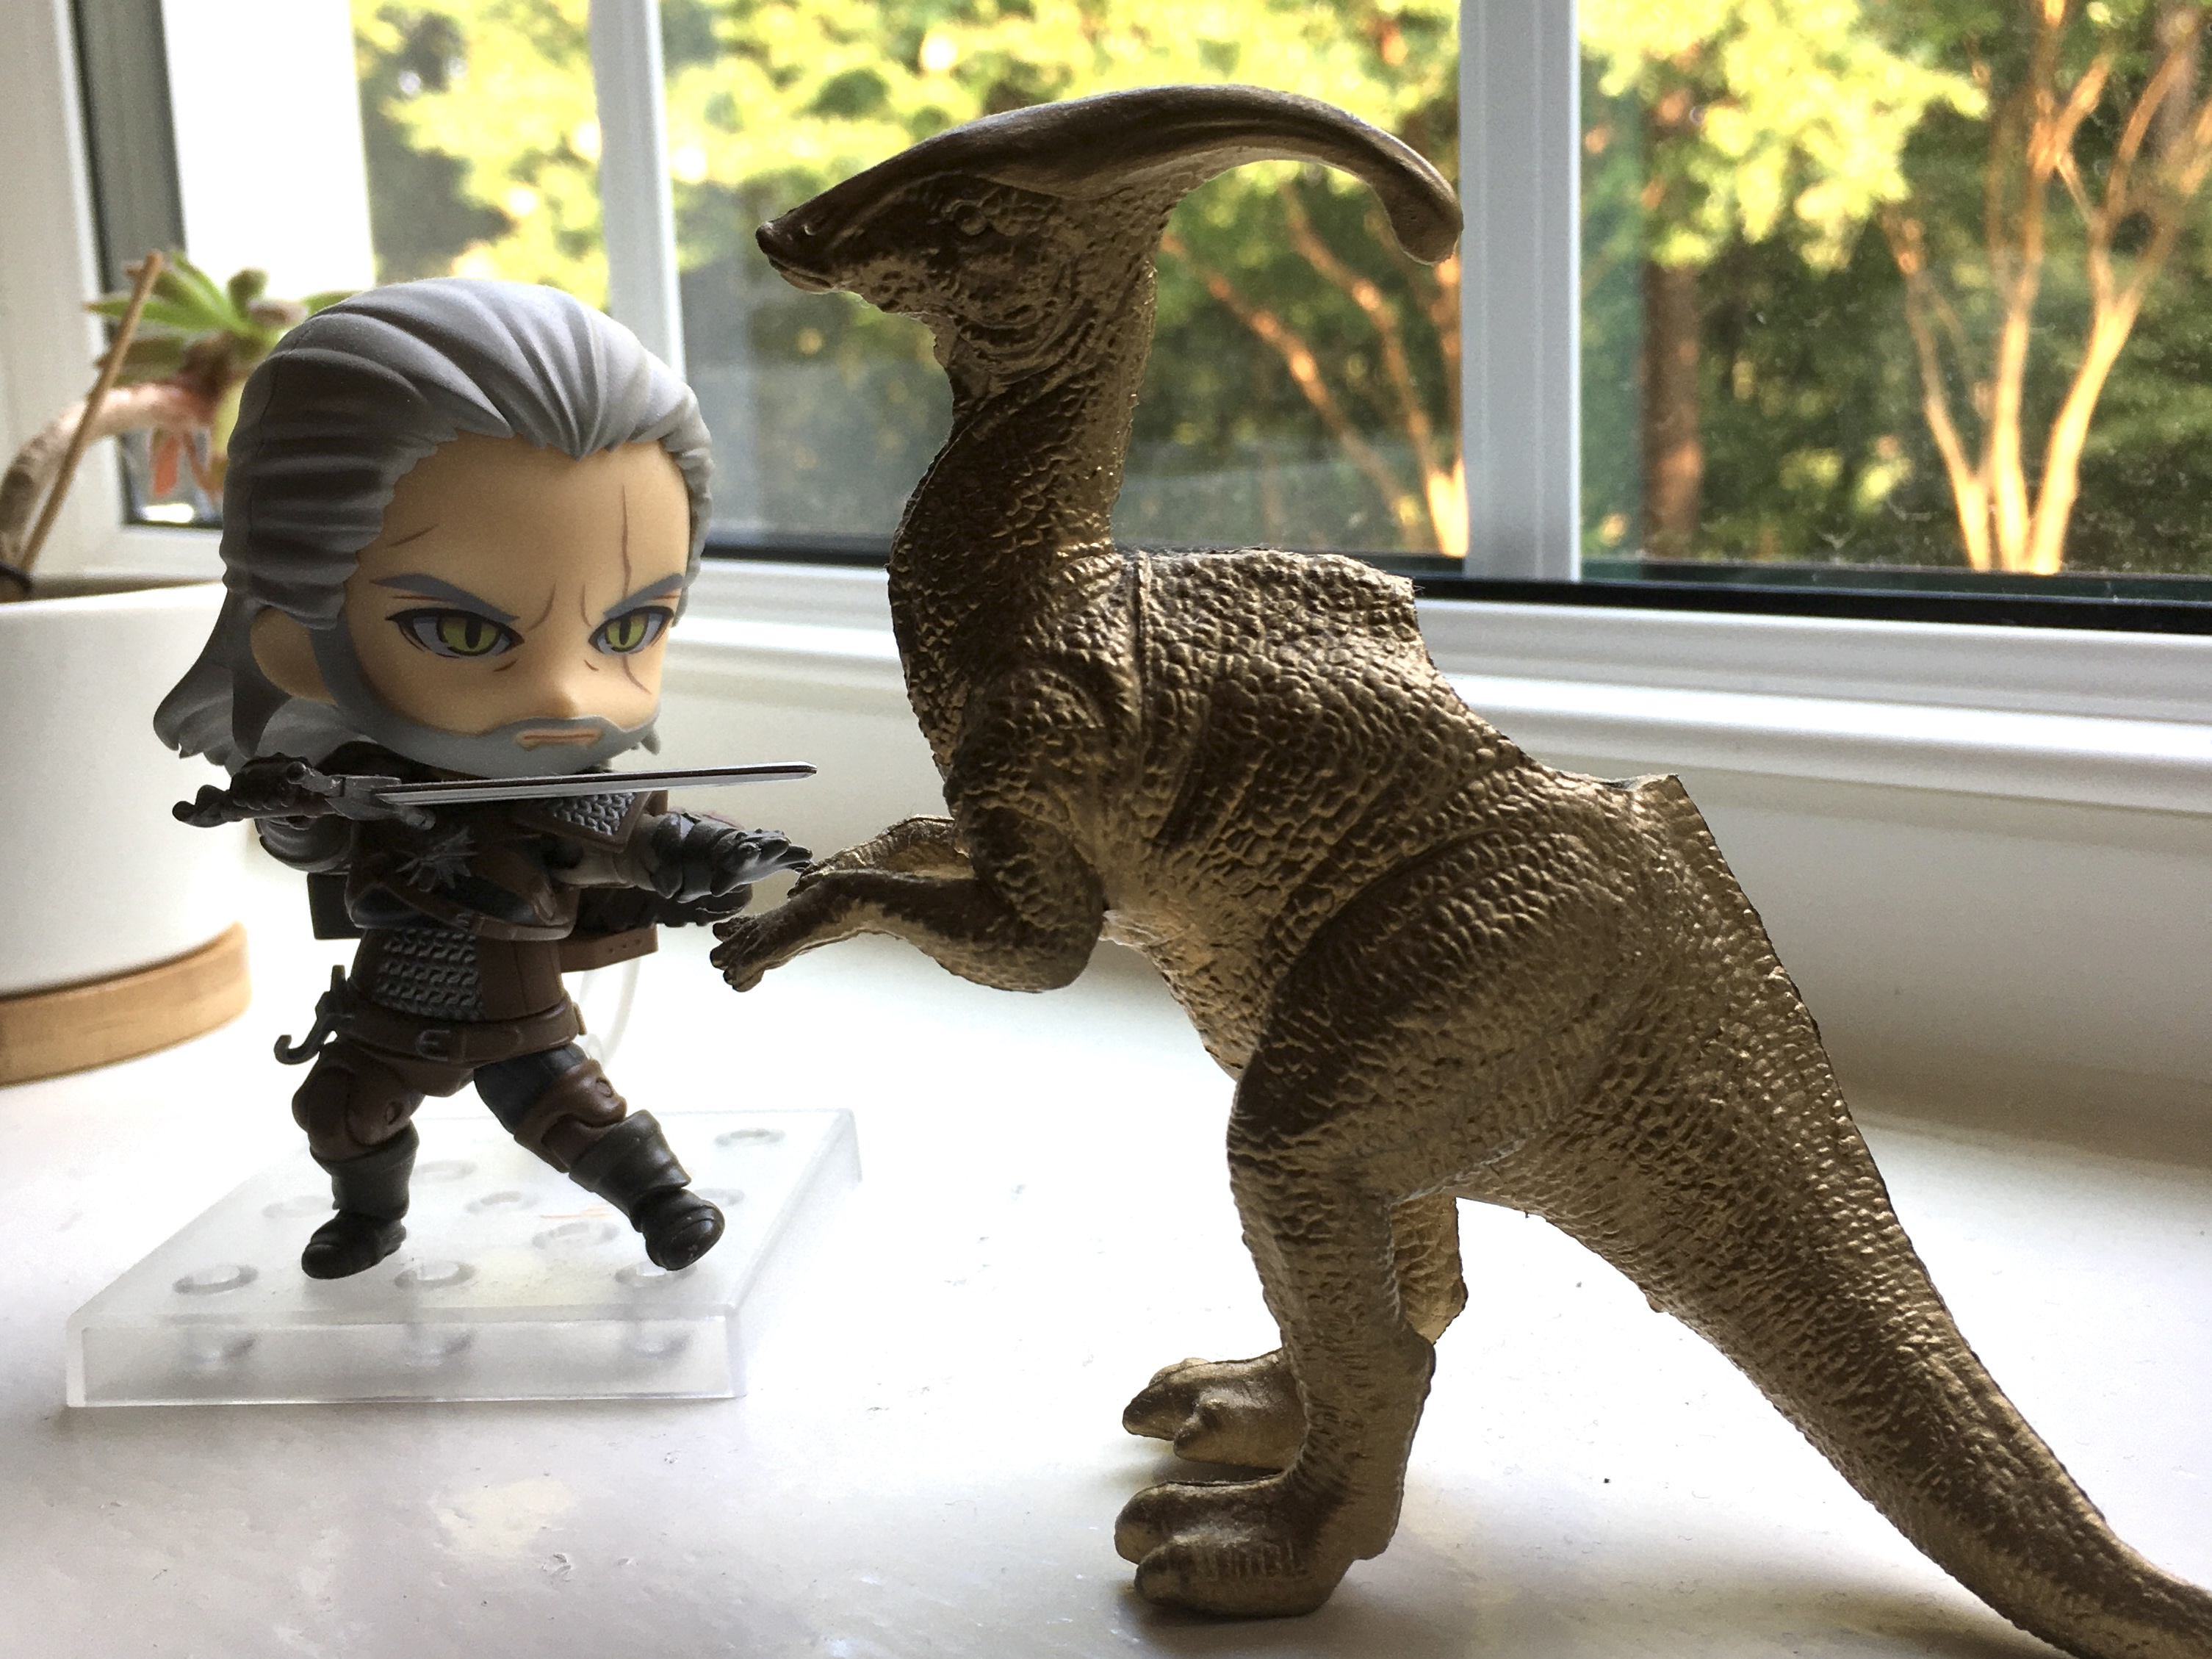 A chibi Geralt figure holding a sword and a gold plastic dinosaur planter on a windowsill, facing each other as if in battle